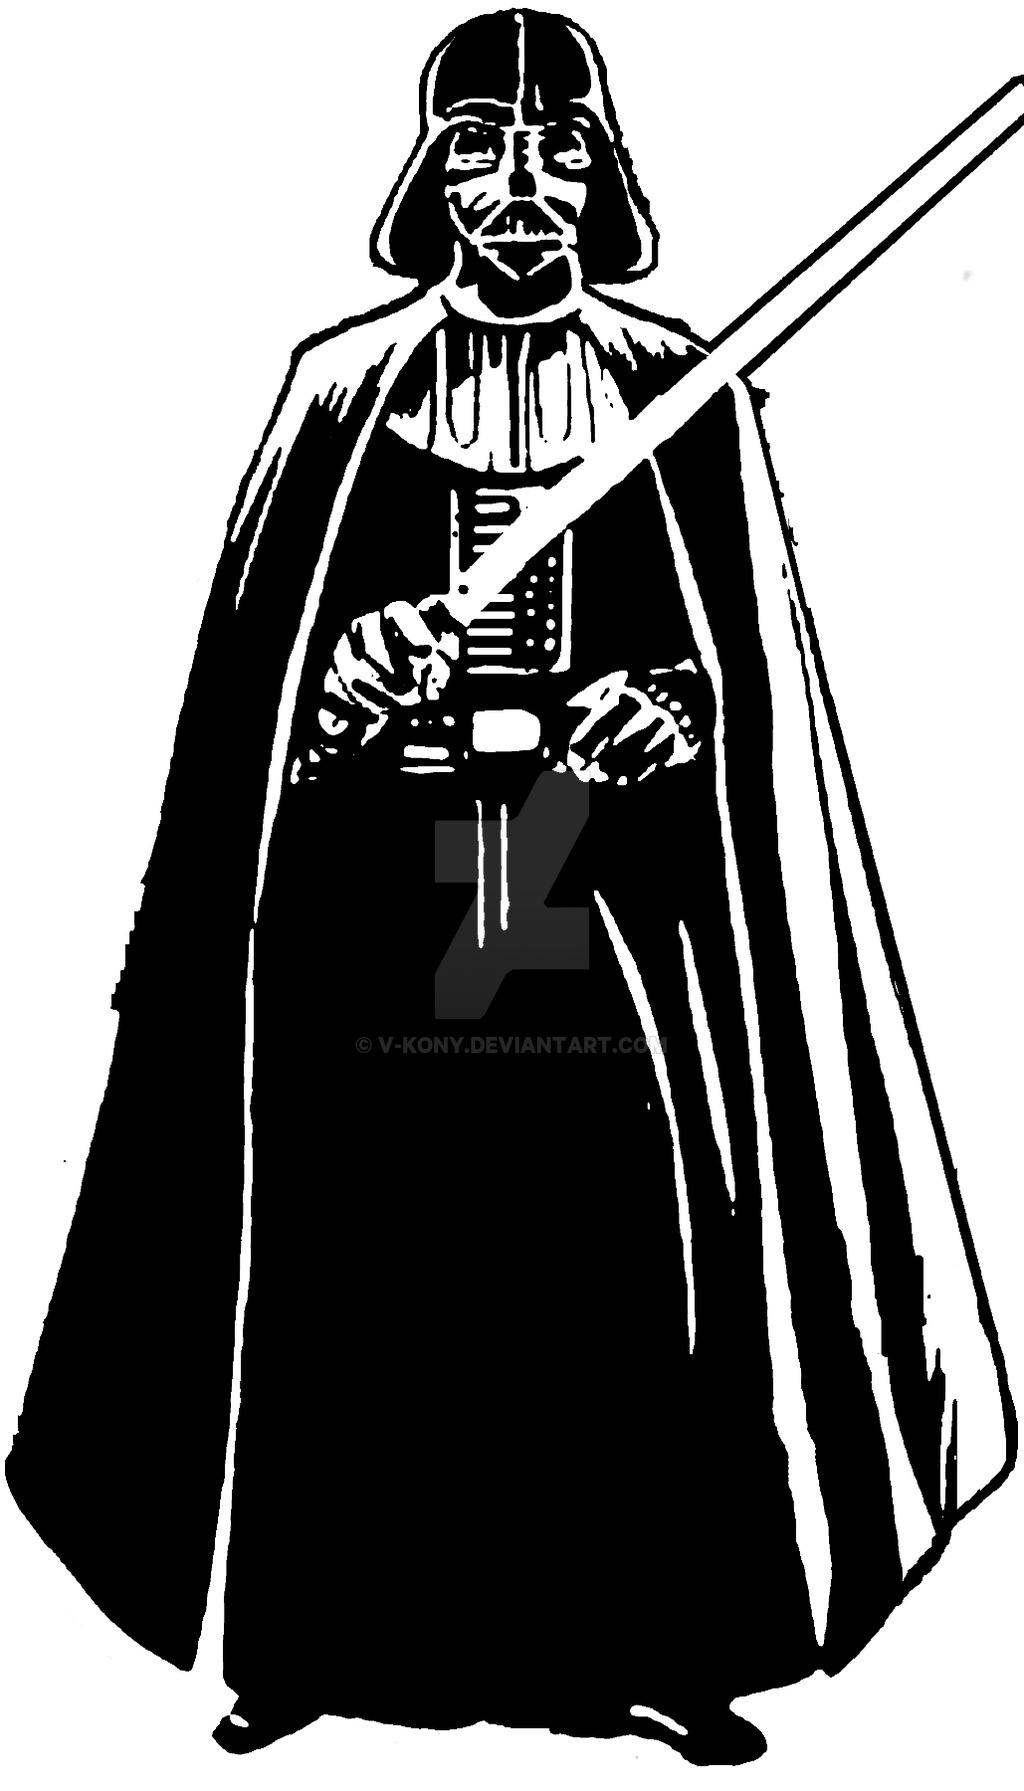 Darth Vader clipart #4, Download drawings